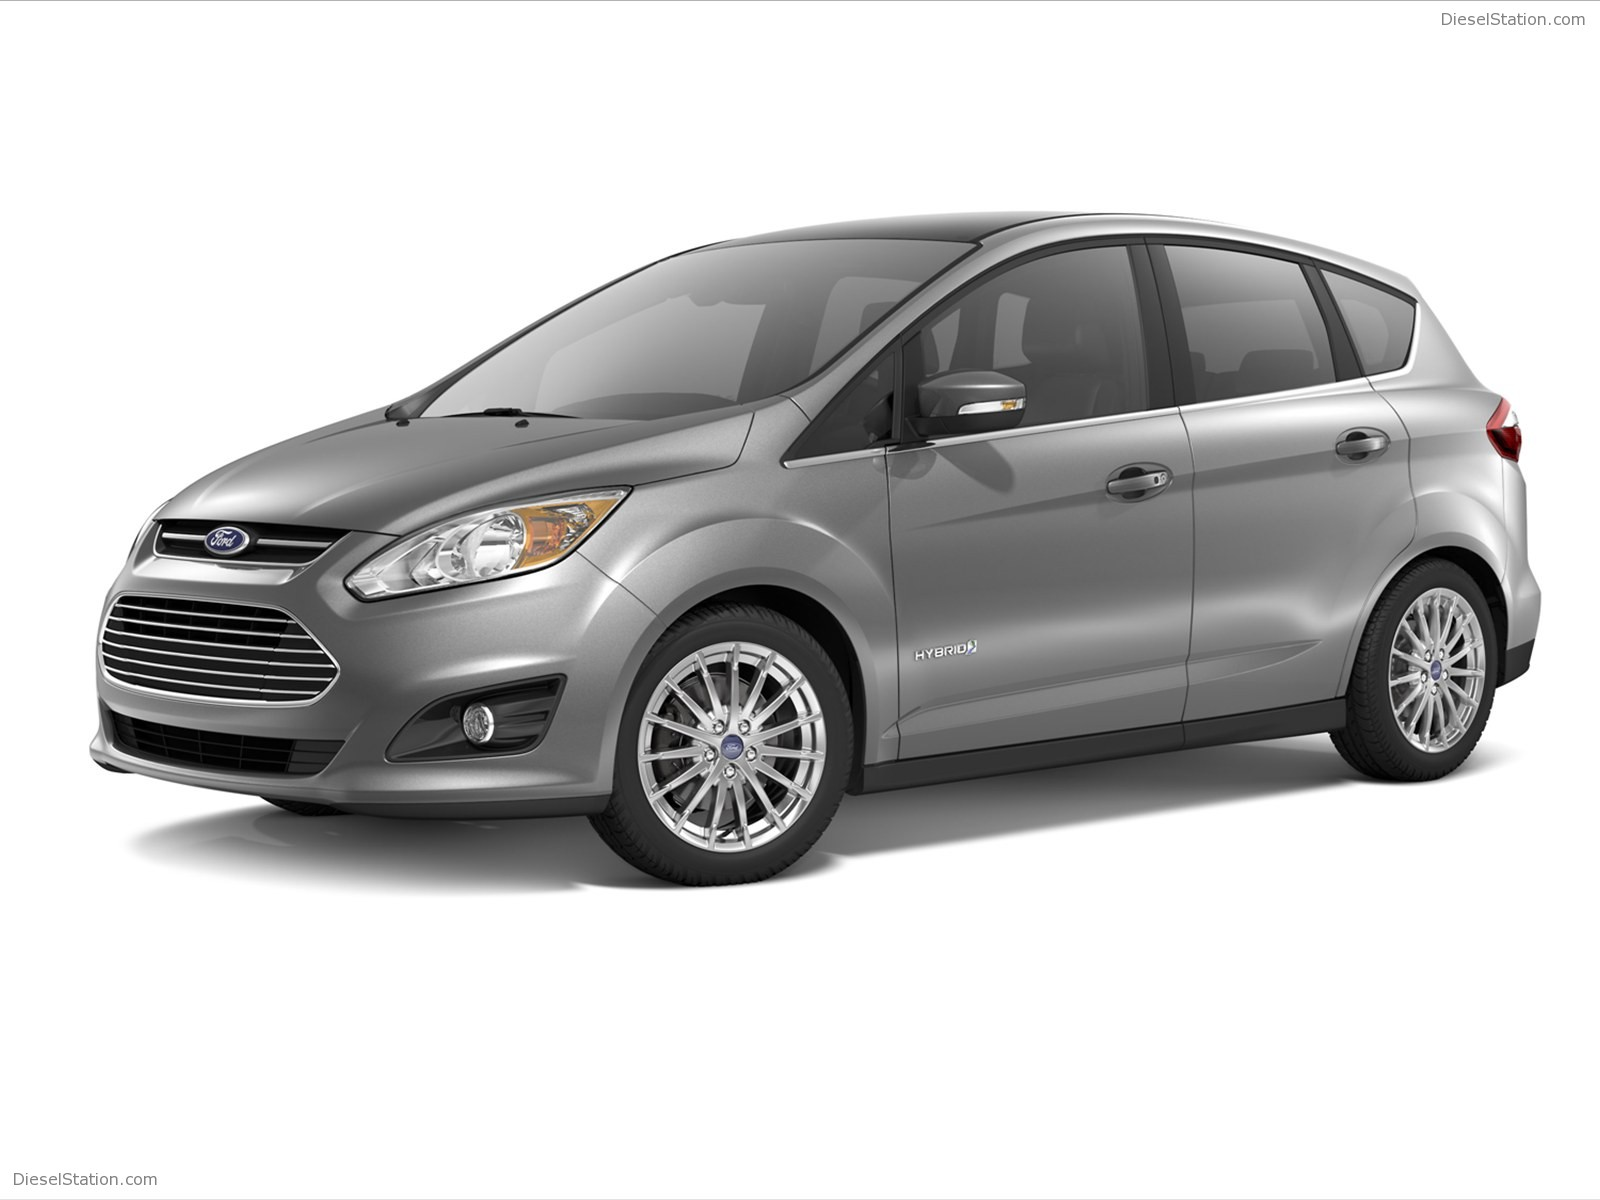 Ford c-max 2013 photo - 3